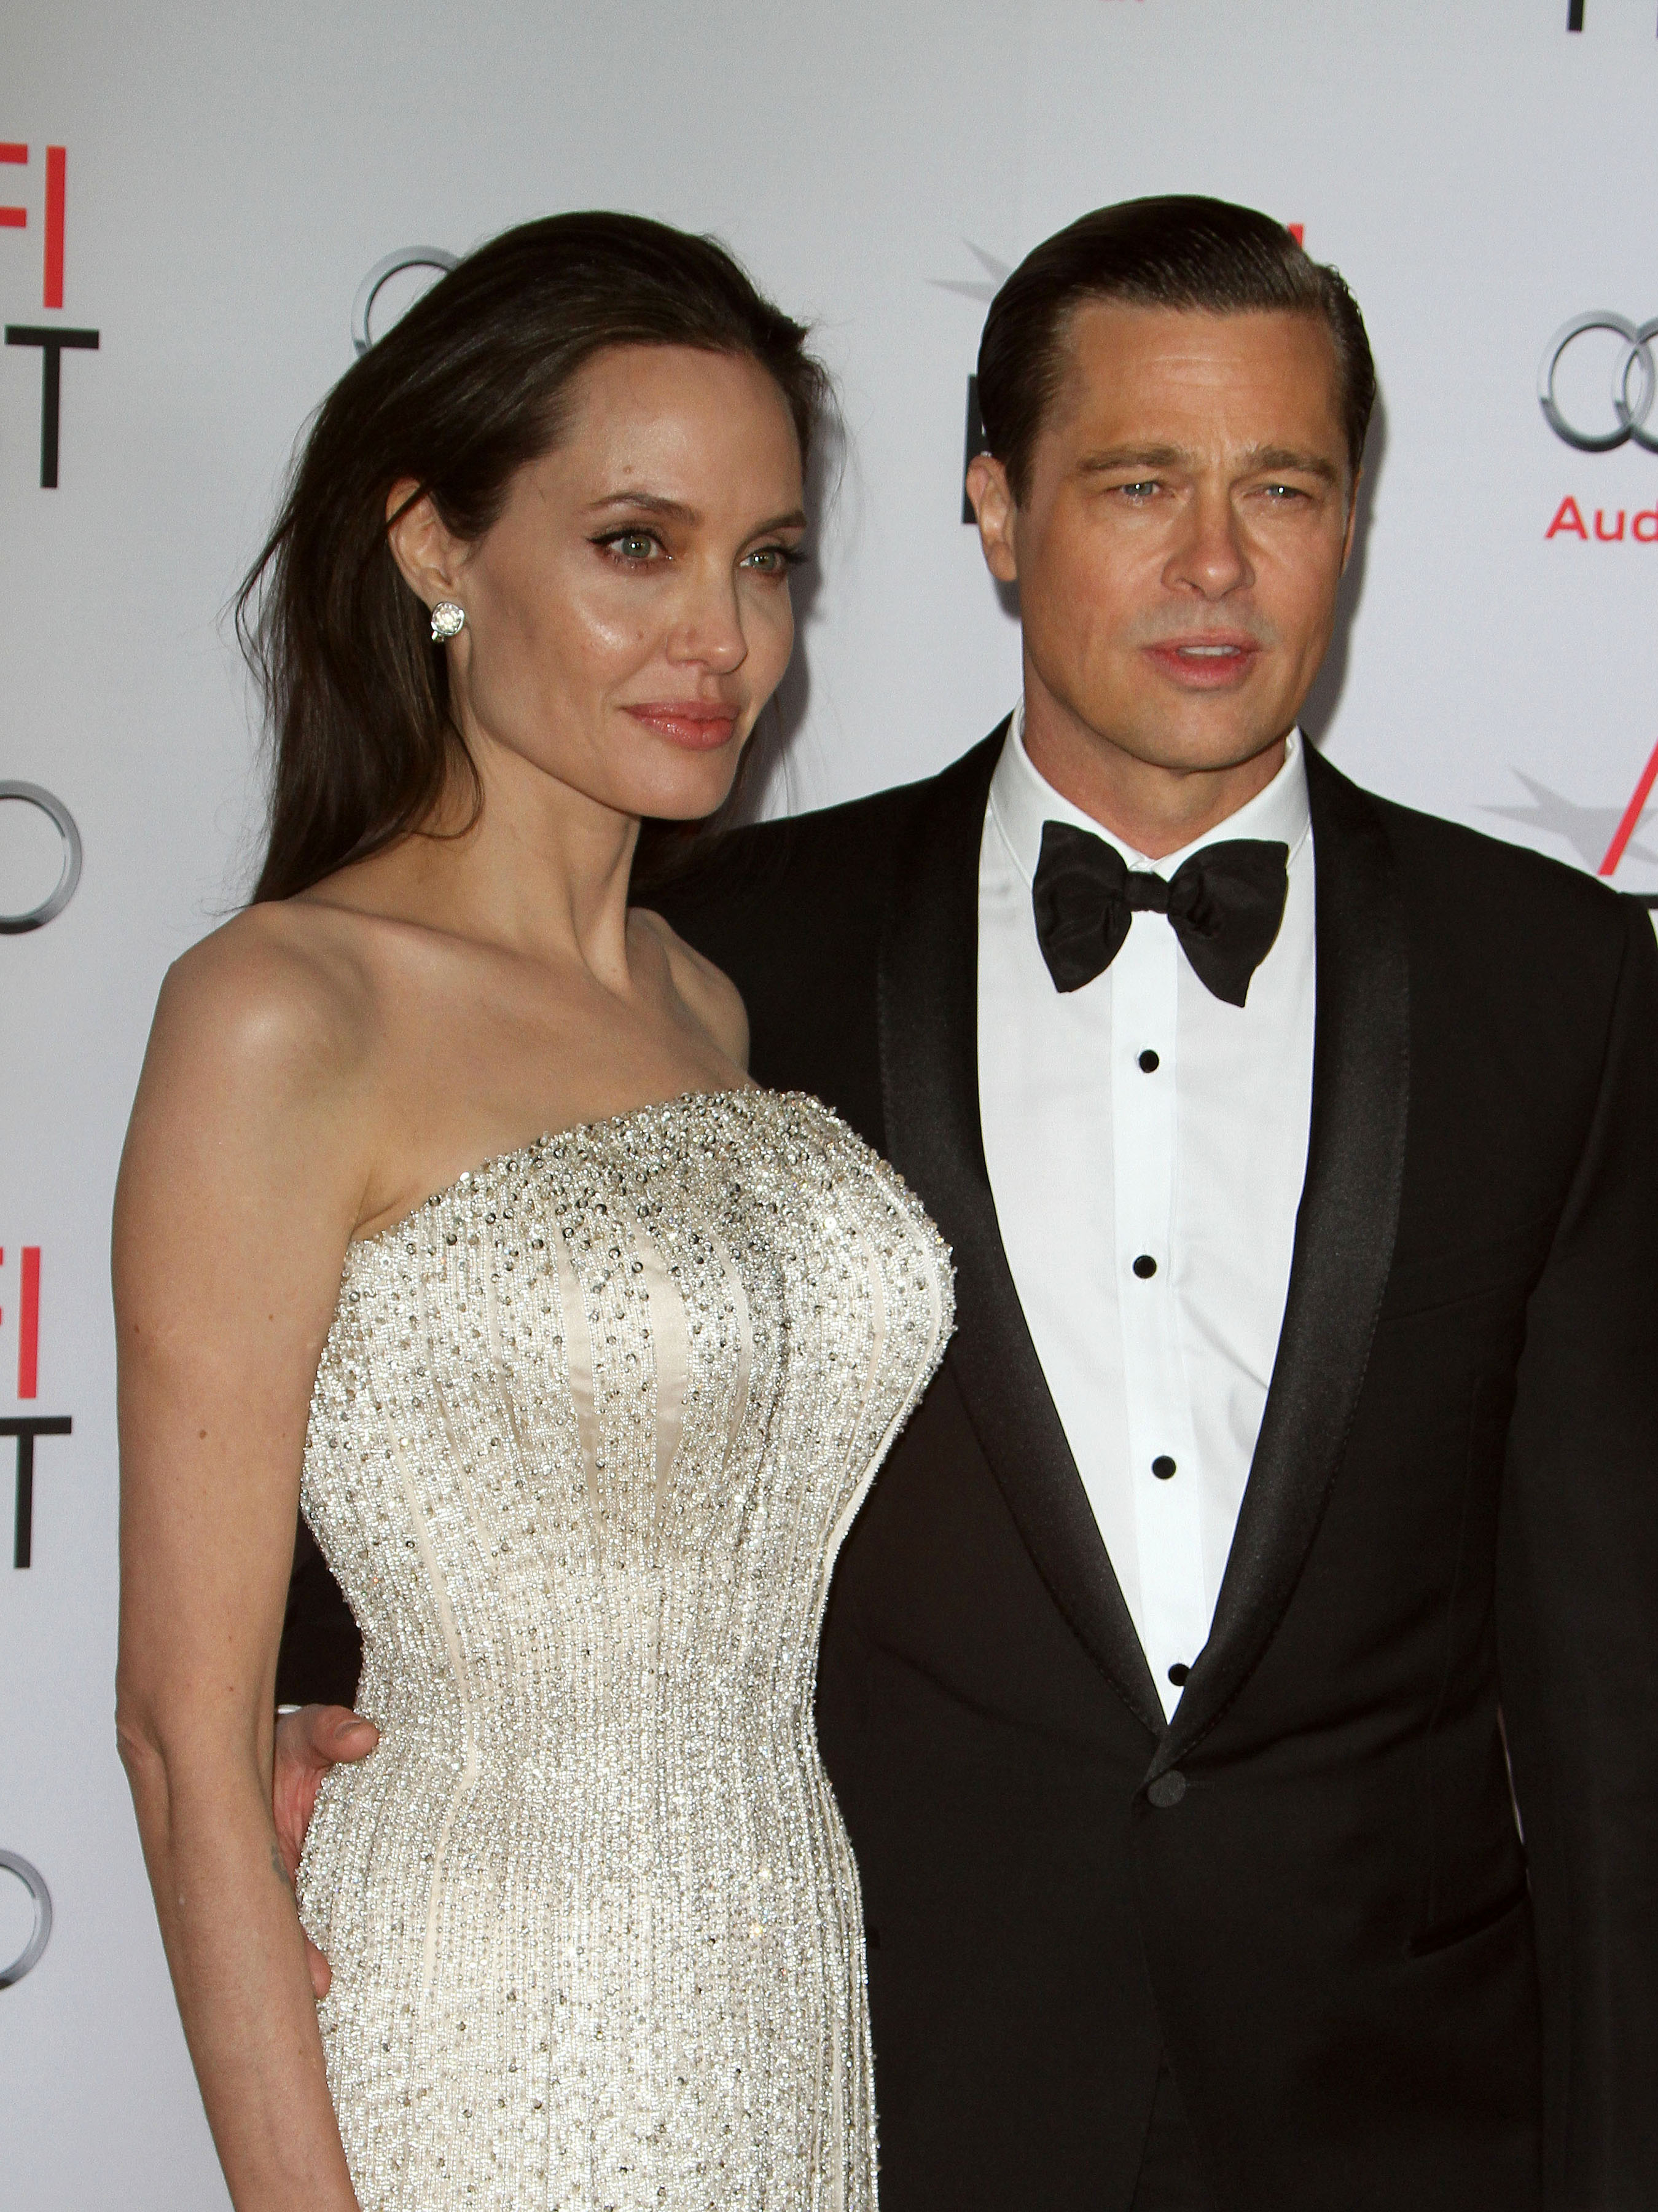 "AFI FEST 2015 Presented By Audi Opening Night Gala Premiere Of Universal Pictures' ""By The Sea""  Featuring: Angelina Jolie Pitt, Brad Pitt Where: Hollywood, California, United States When: 06 Nov 2015 Credit: FayesVision/WENN.com"